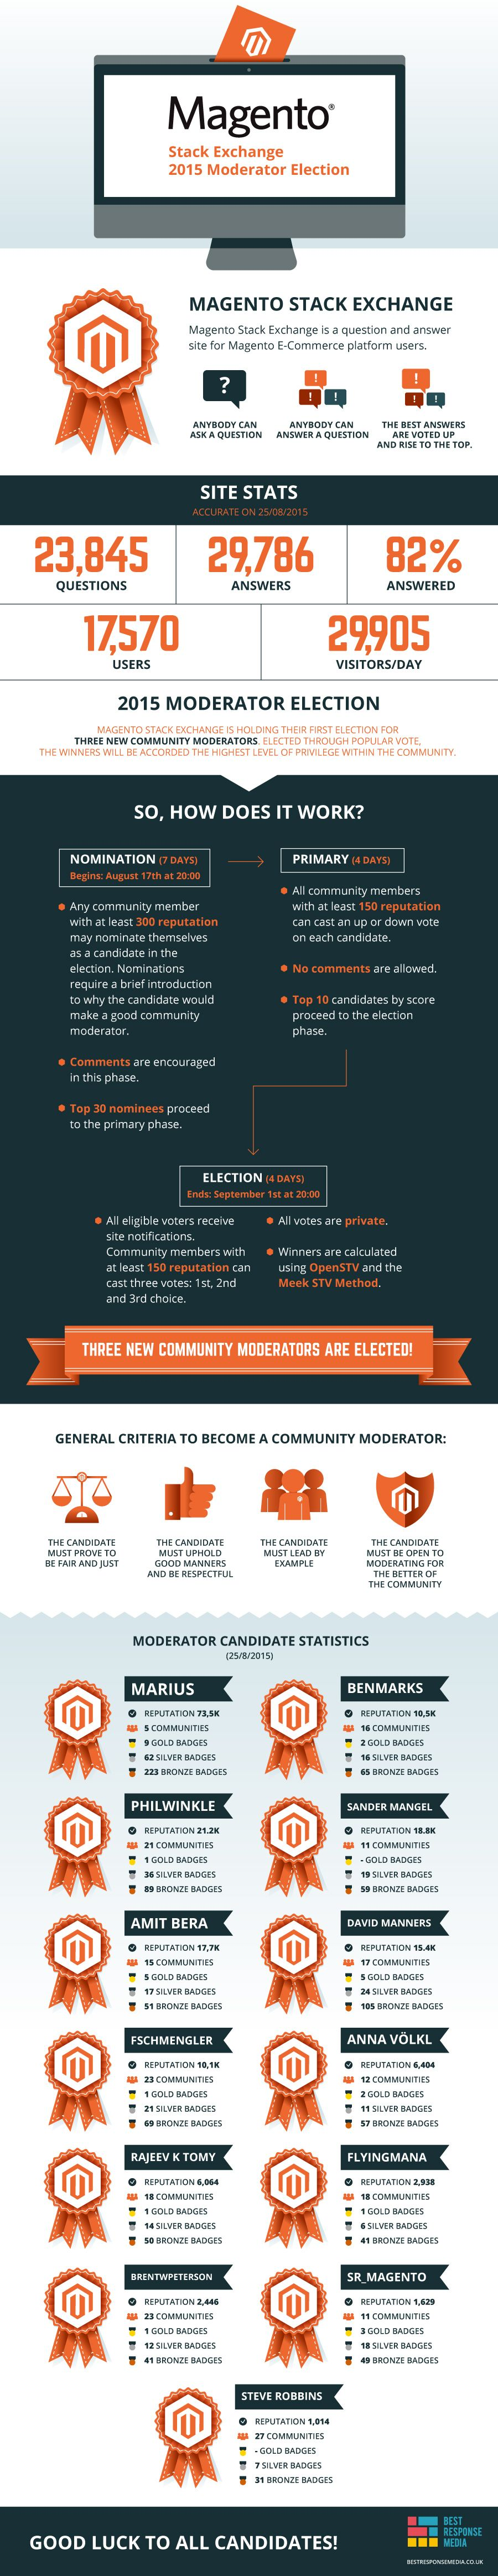 Magento Stack Exchange Moderator Election 2015 #infographic